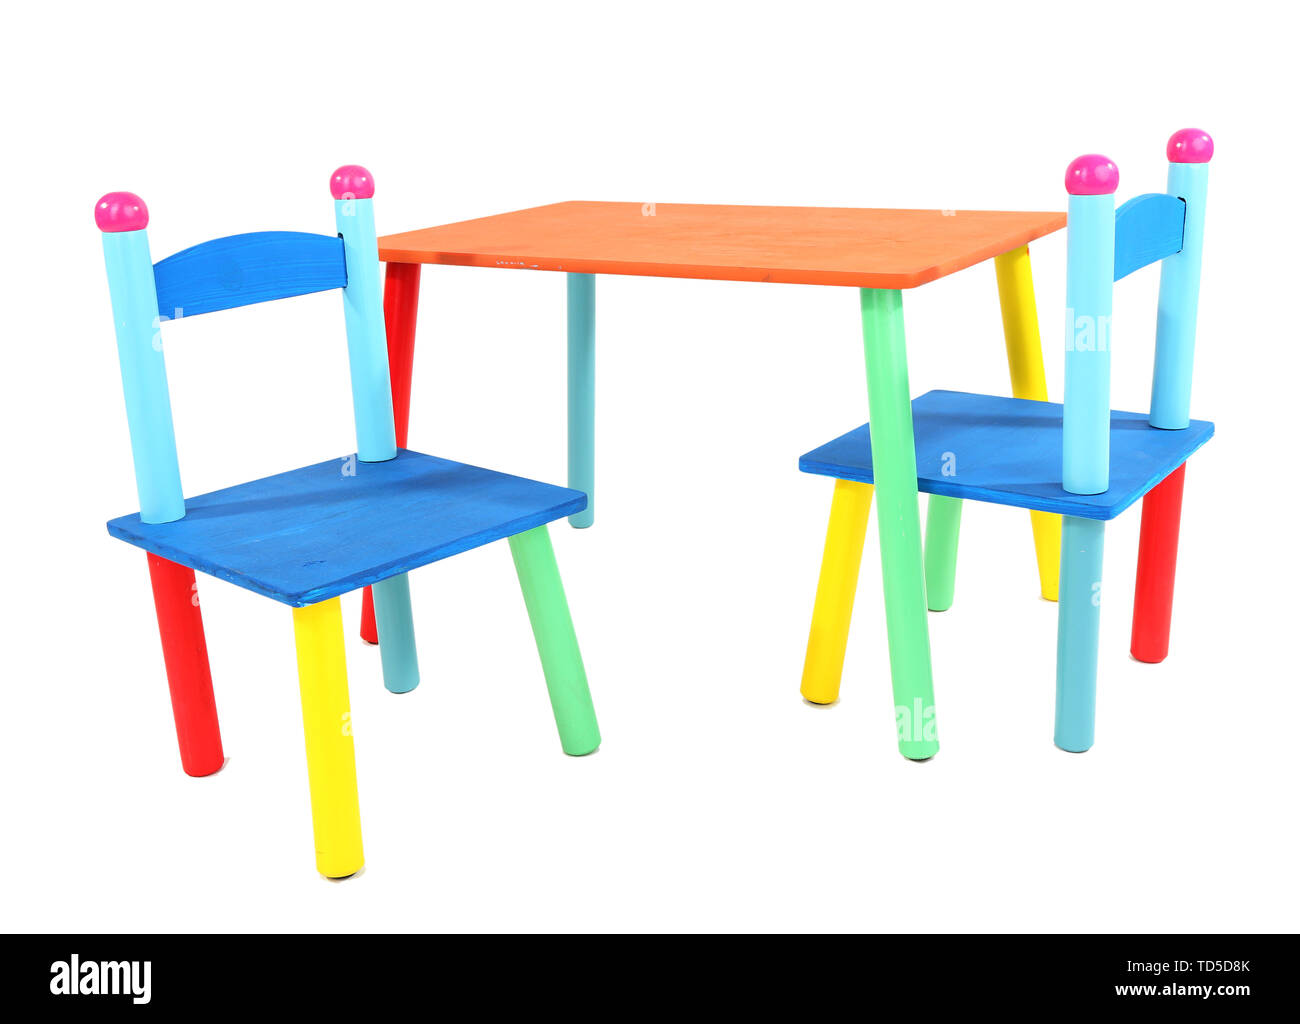 Outstanding Small And Colorful Table And Chairs For Little Kids Isolated Gmtry Best Dining Table And Chair Ideas Images Gmtryco